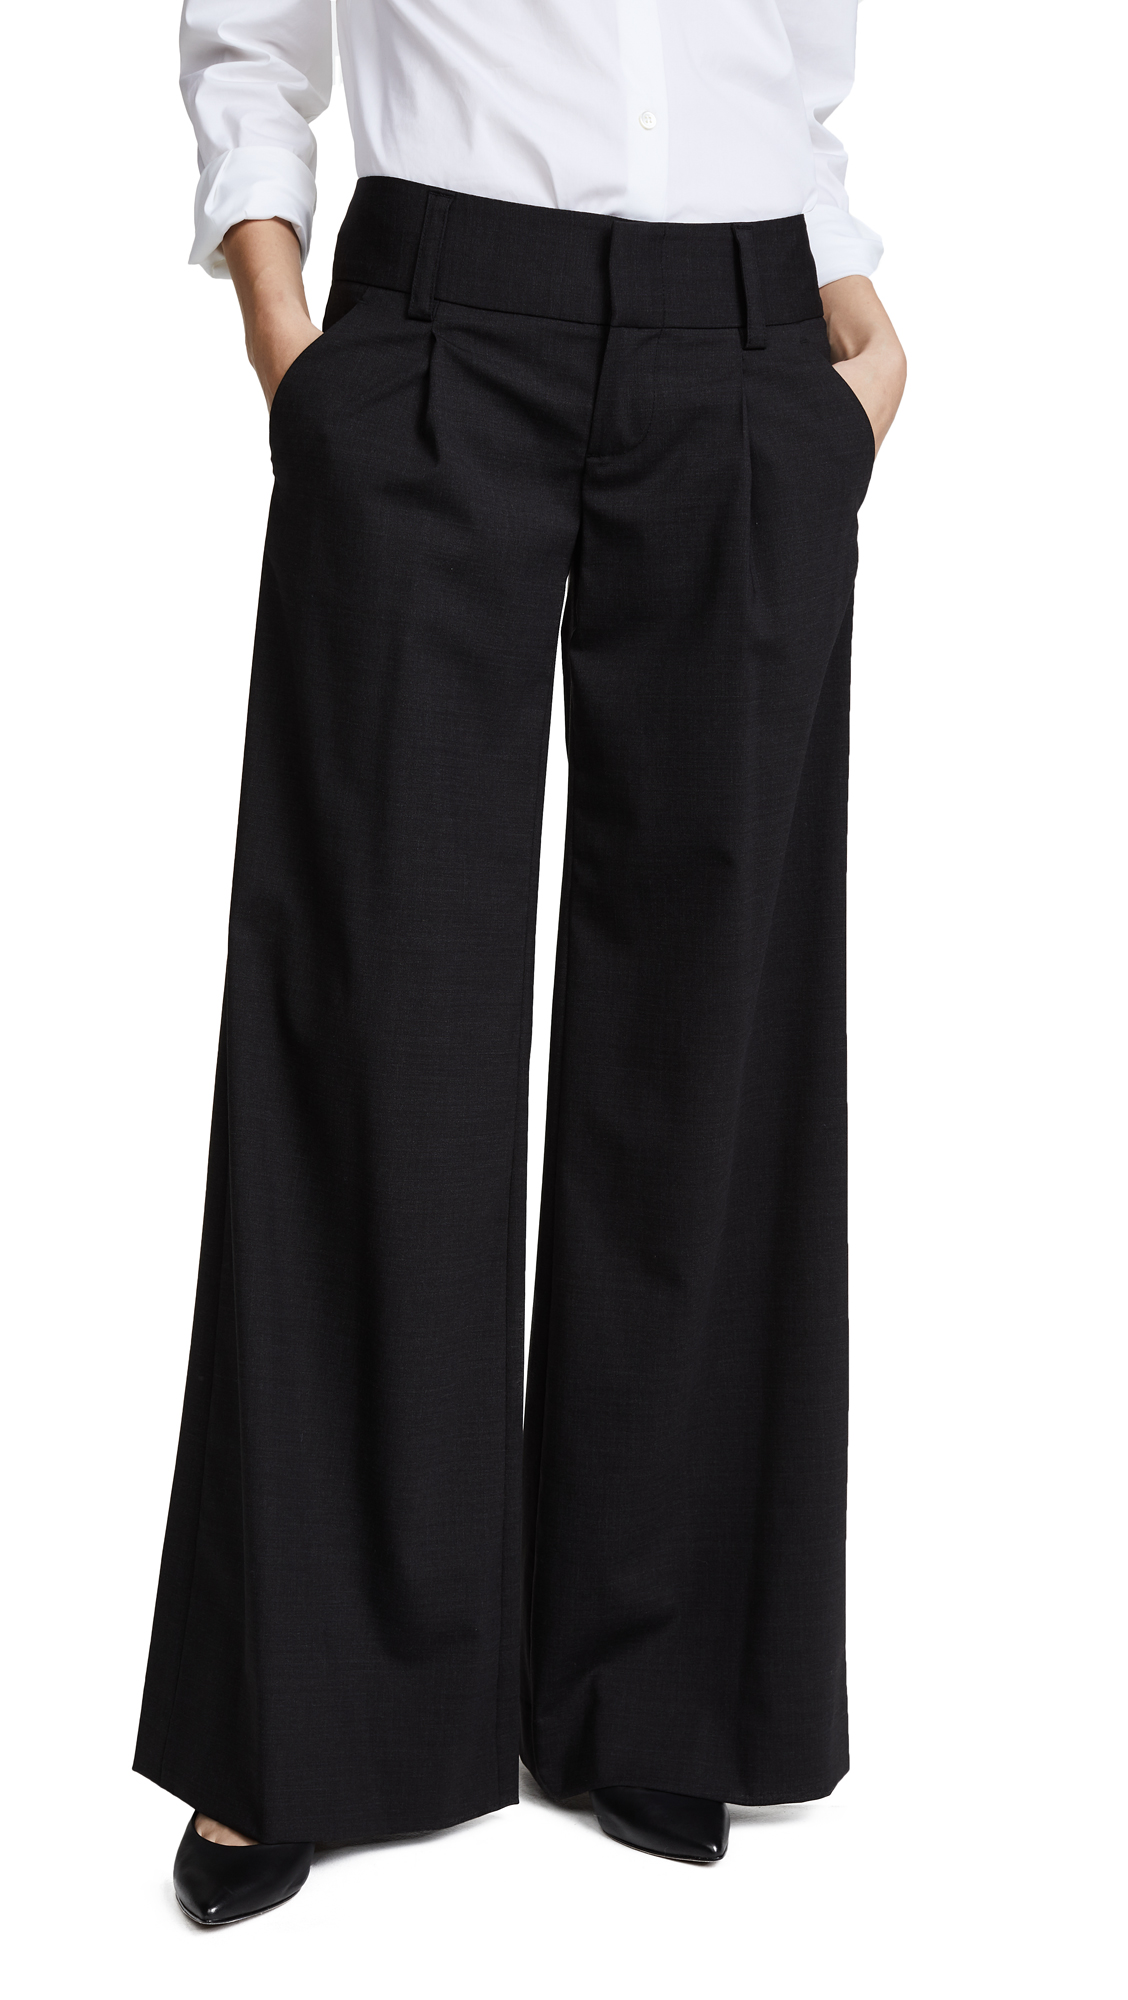 alice + olivia Eric Front Pleat Wide Leg Pants - Charcoal